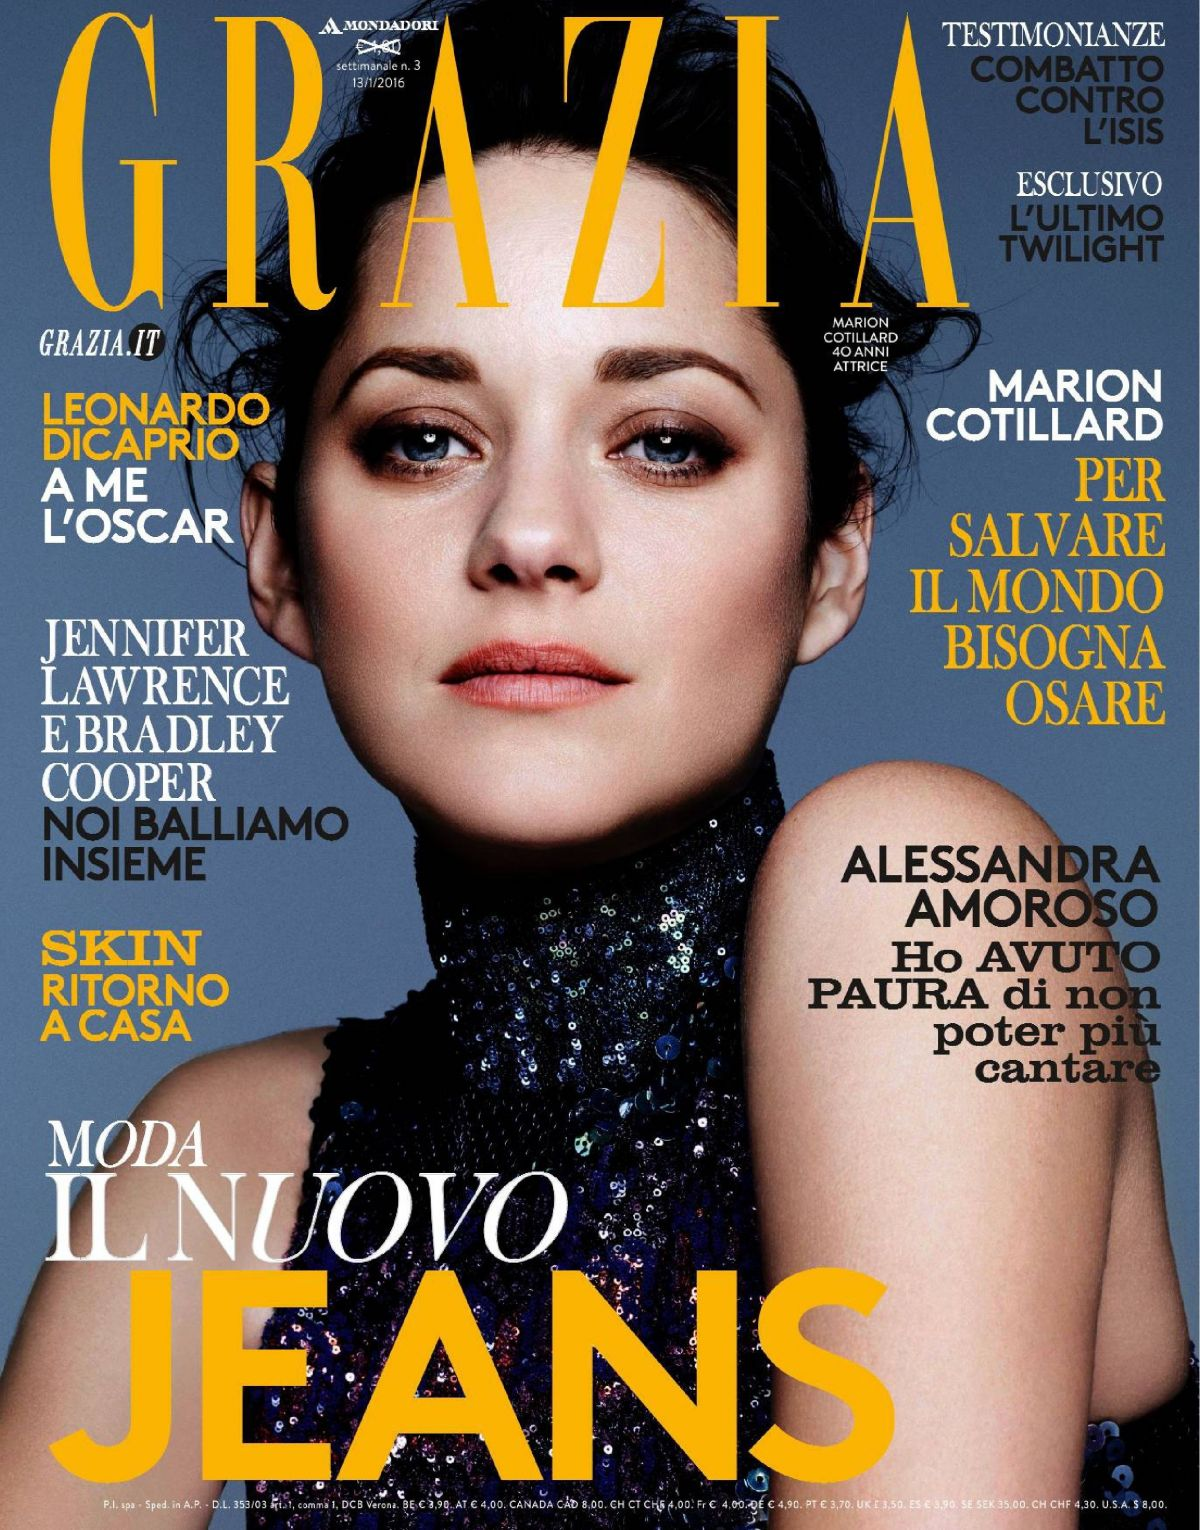 MARION COTILLARD in Grazia Magazine, Italy January 2016 Issue